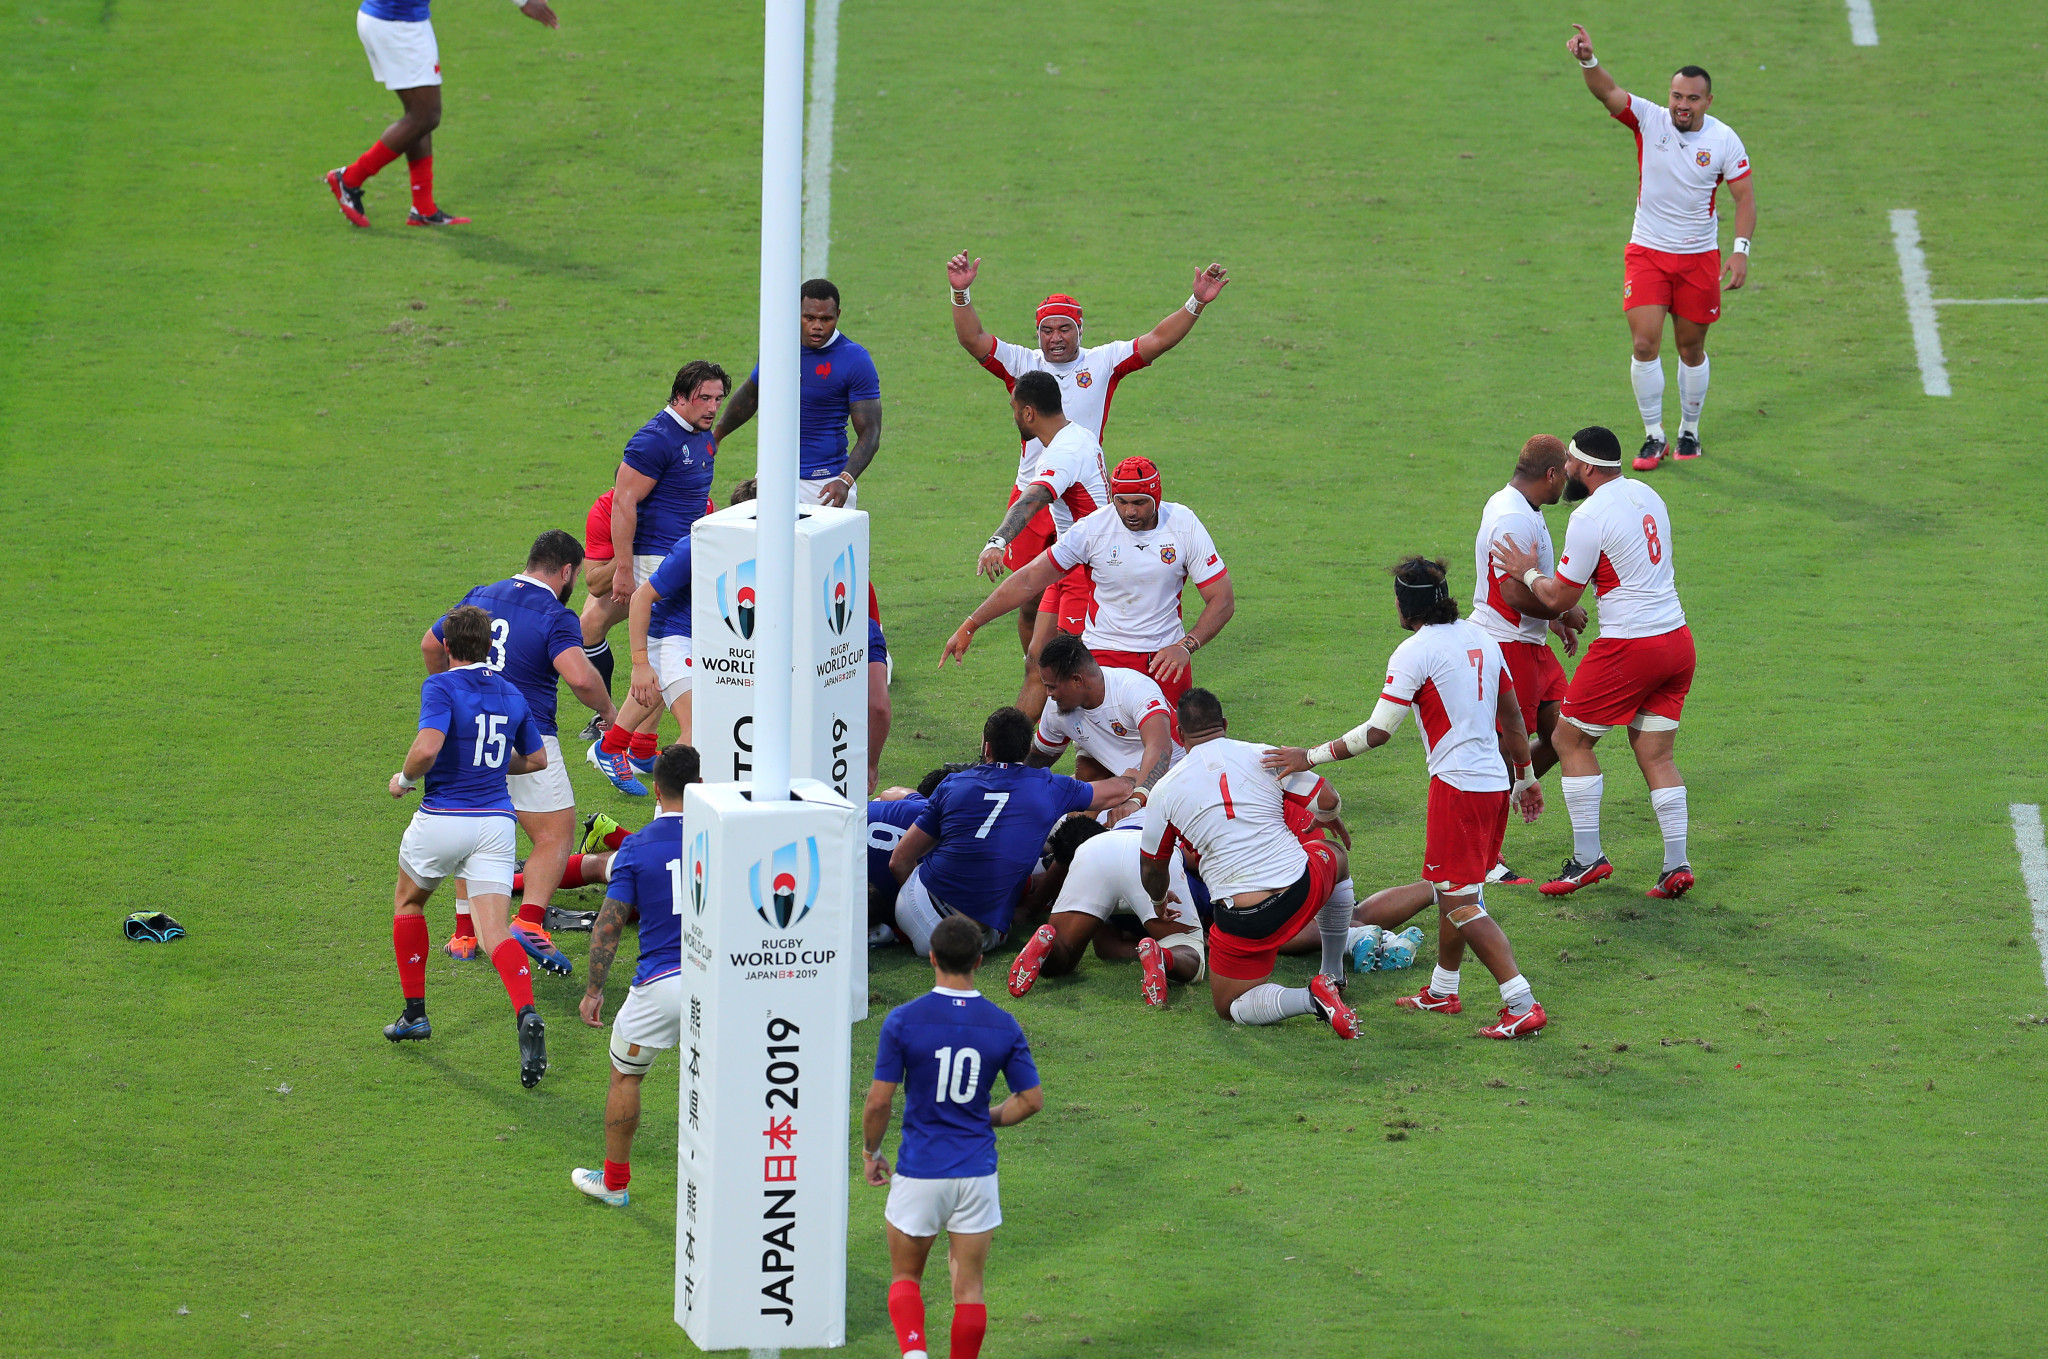 Sonatane Takulua's try on the stroke of half-time gave his side hope ©Getty Images